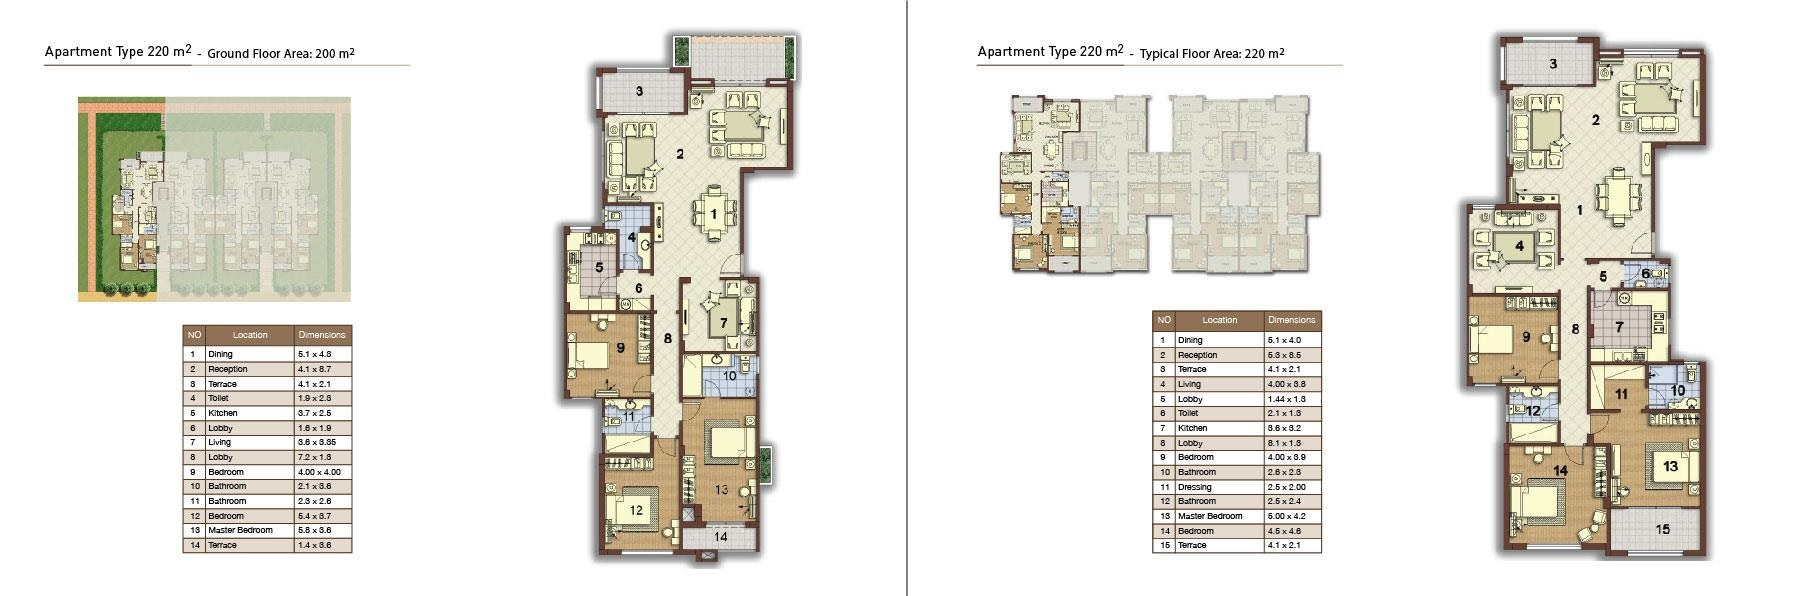 apartment type 220 01